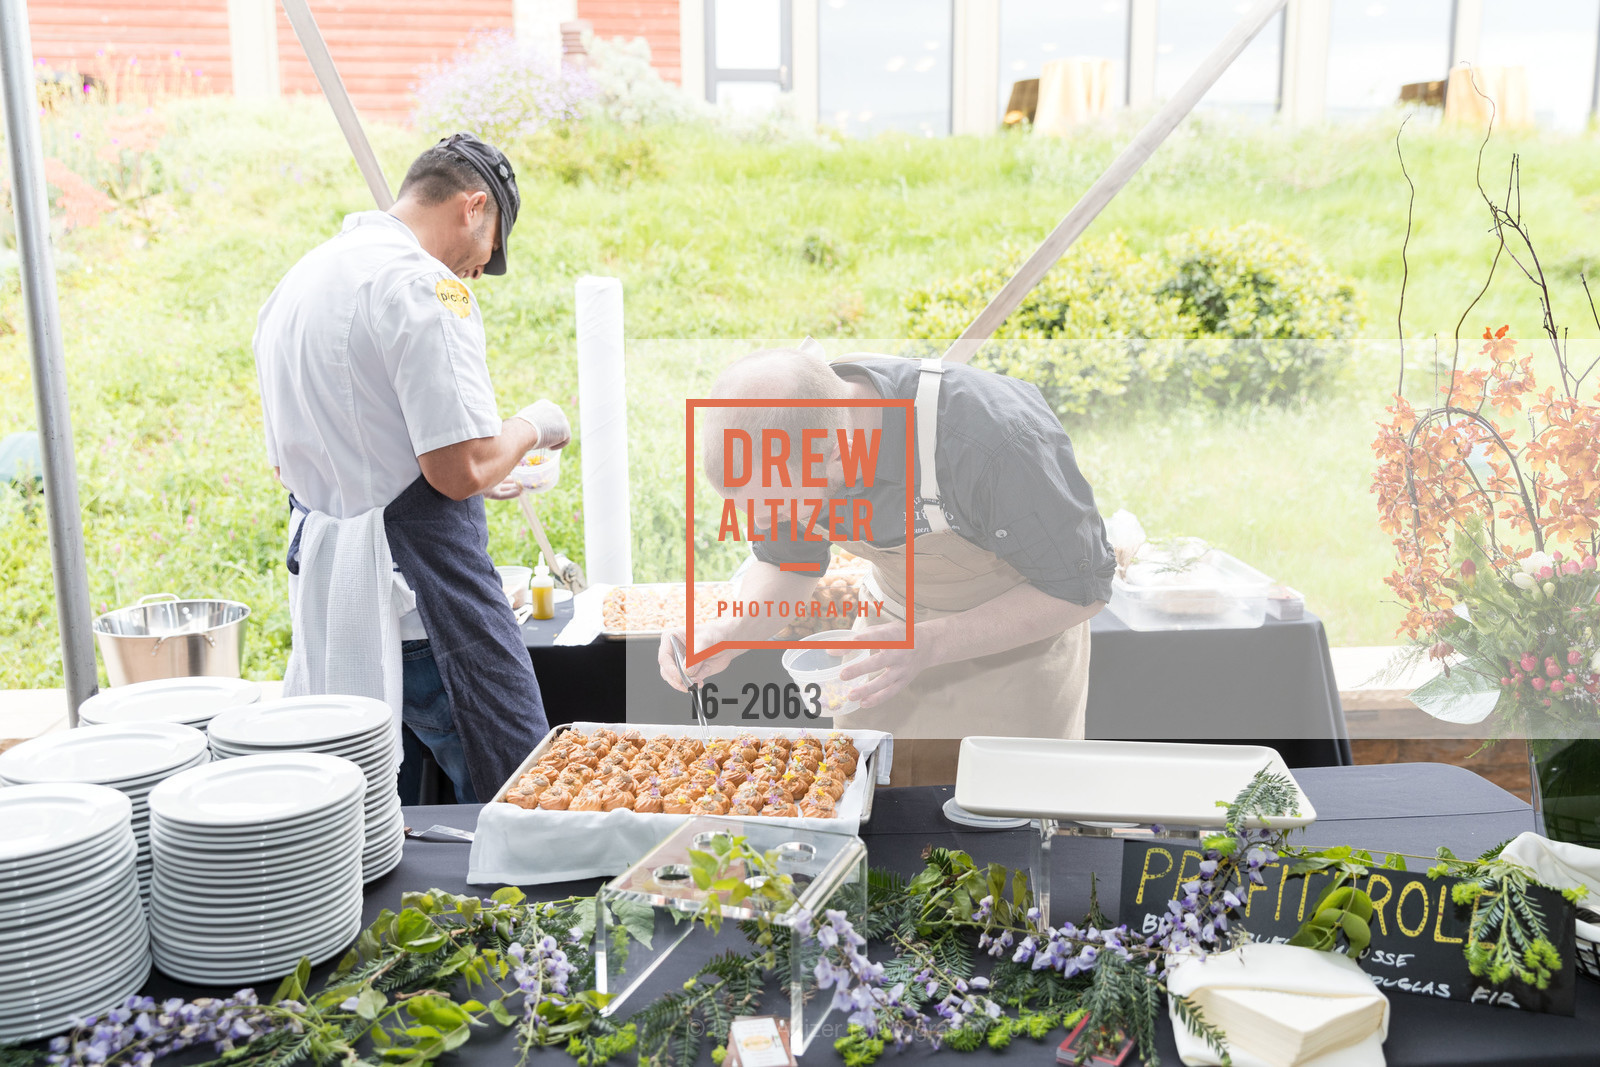 Atmosphere, Great Chefs and Wineries, Peacock Gap, April 22nd, 2017